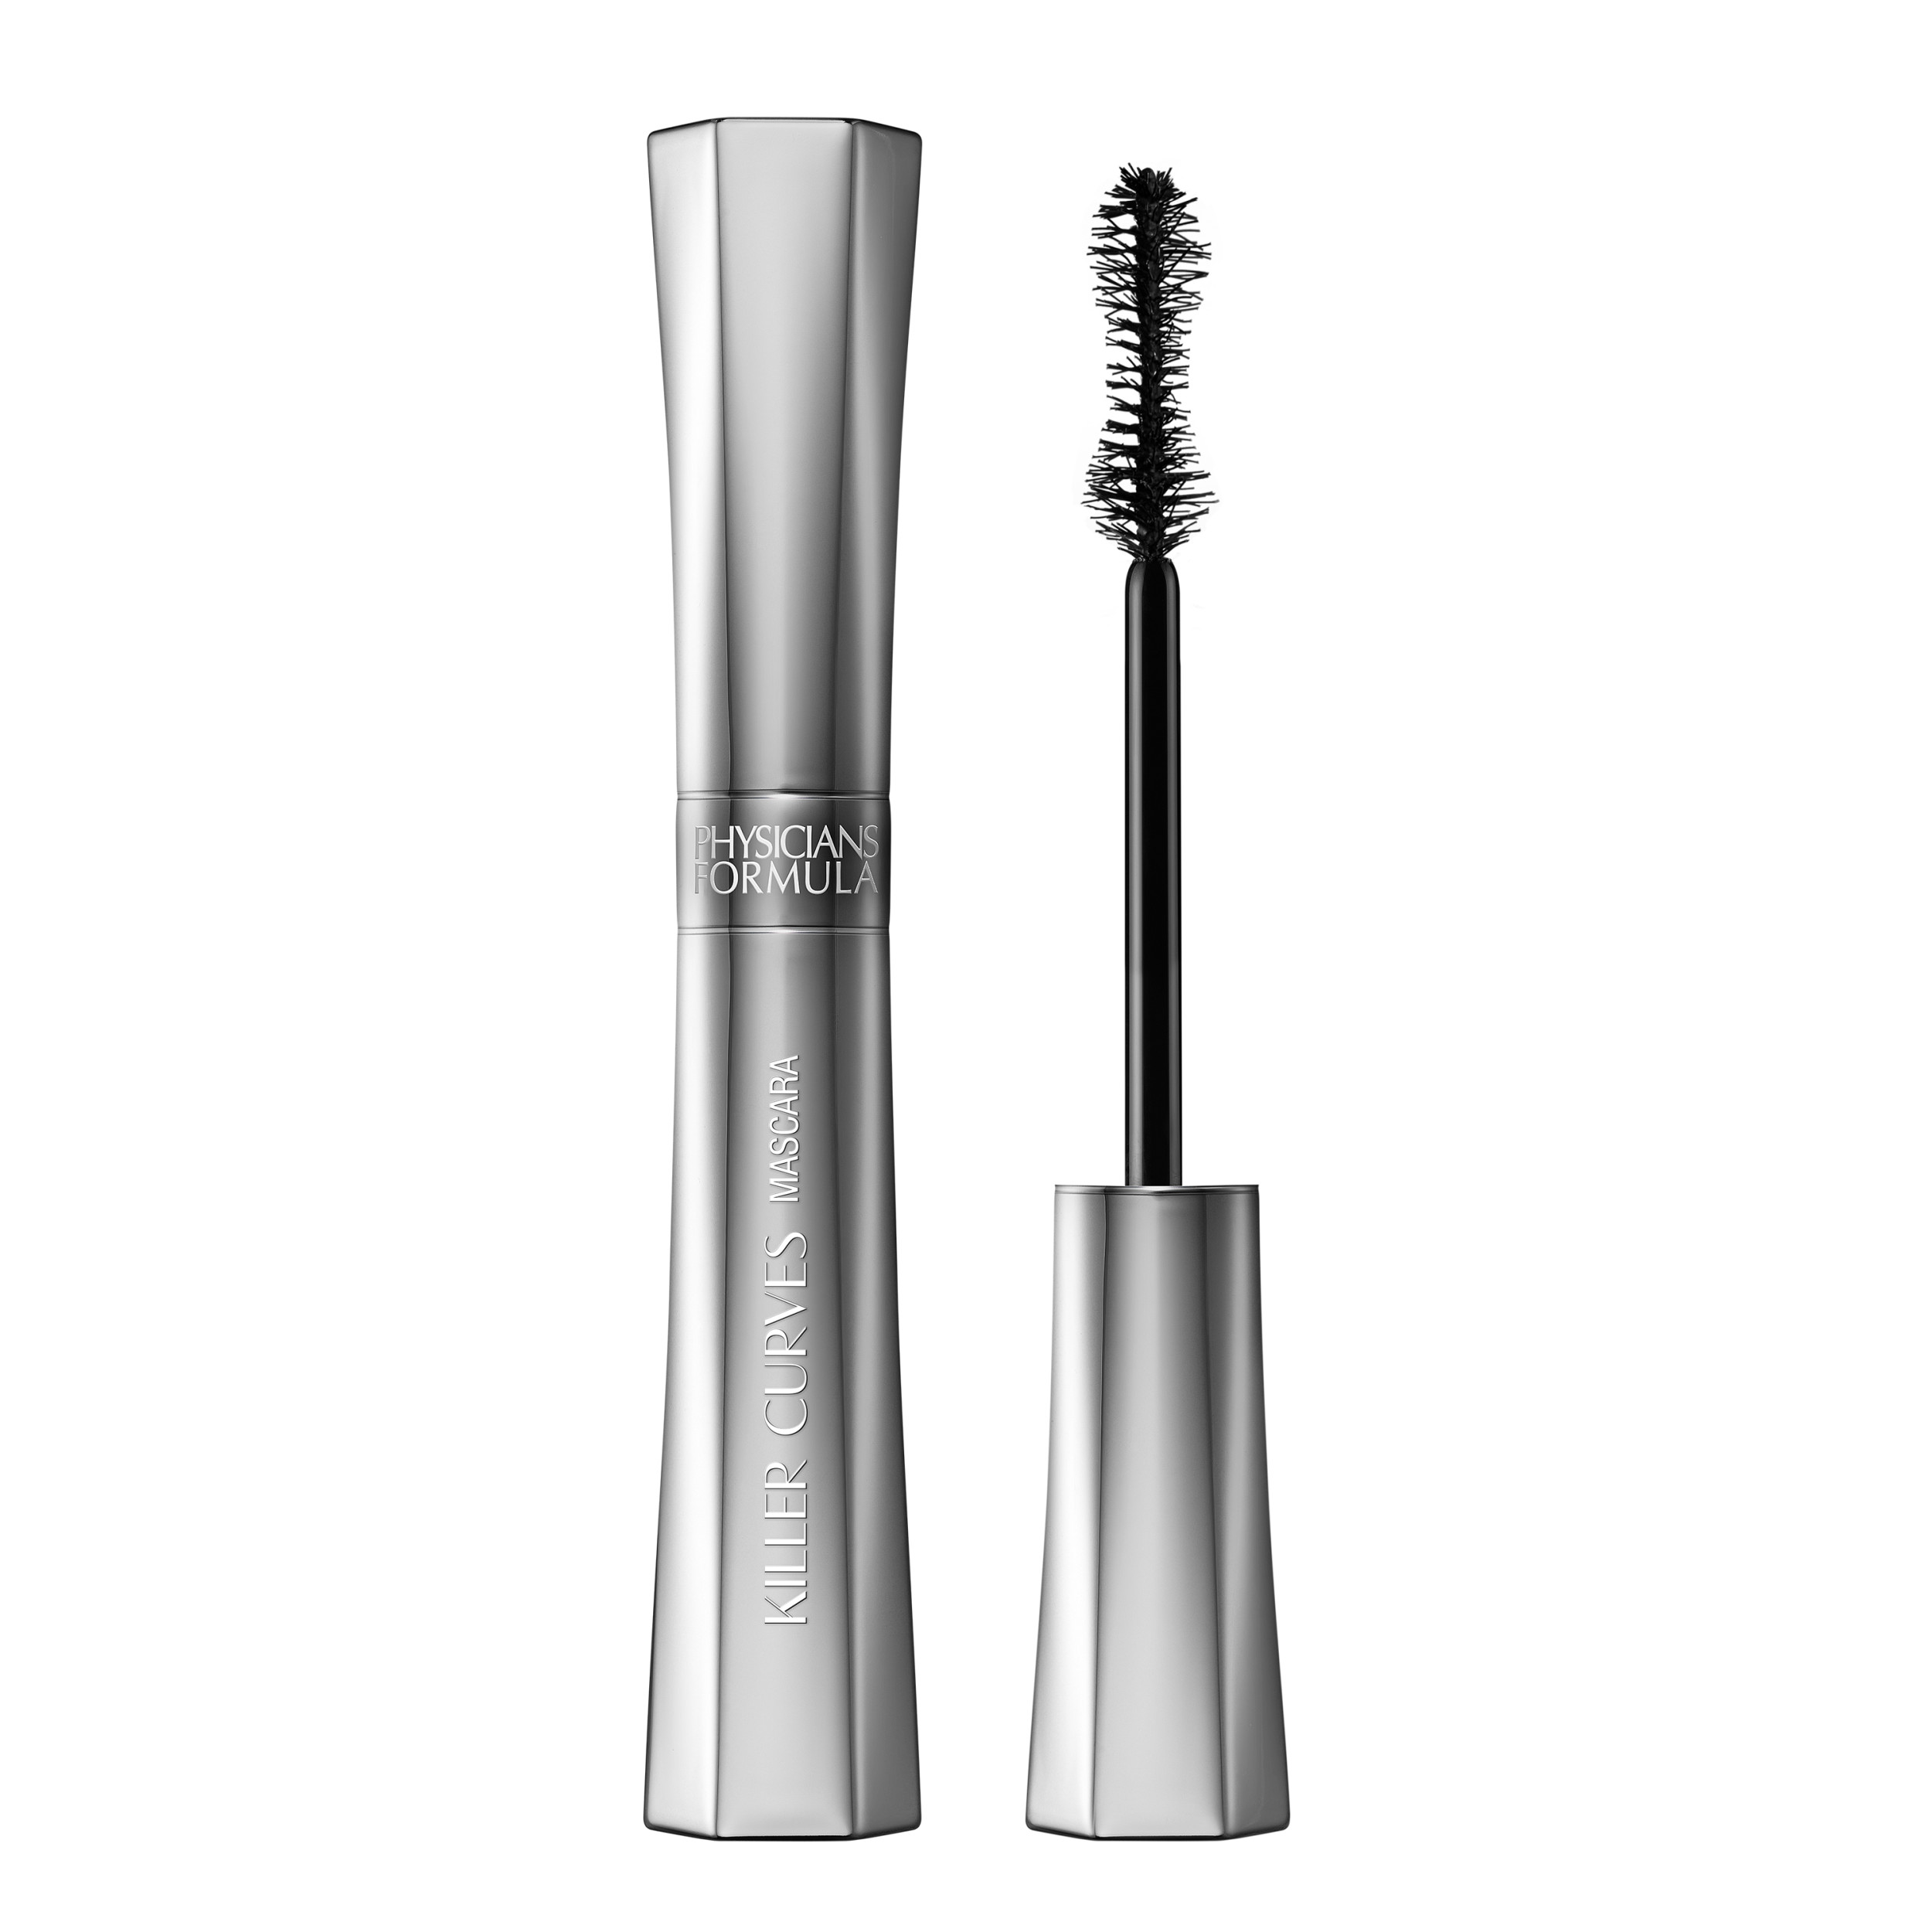 Physicians Formula Killer Curves Mascara, Black/Brown